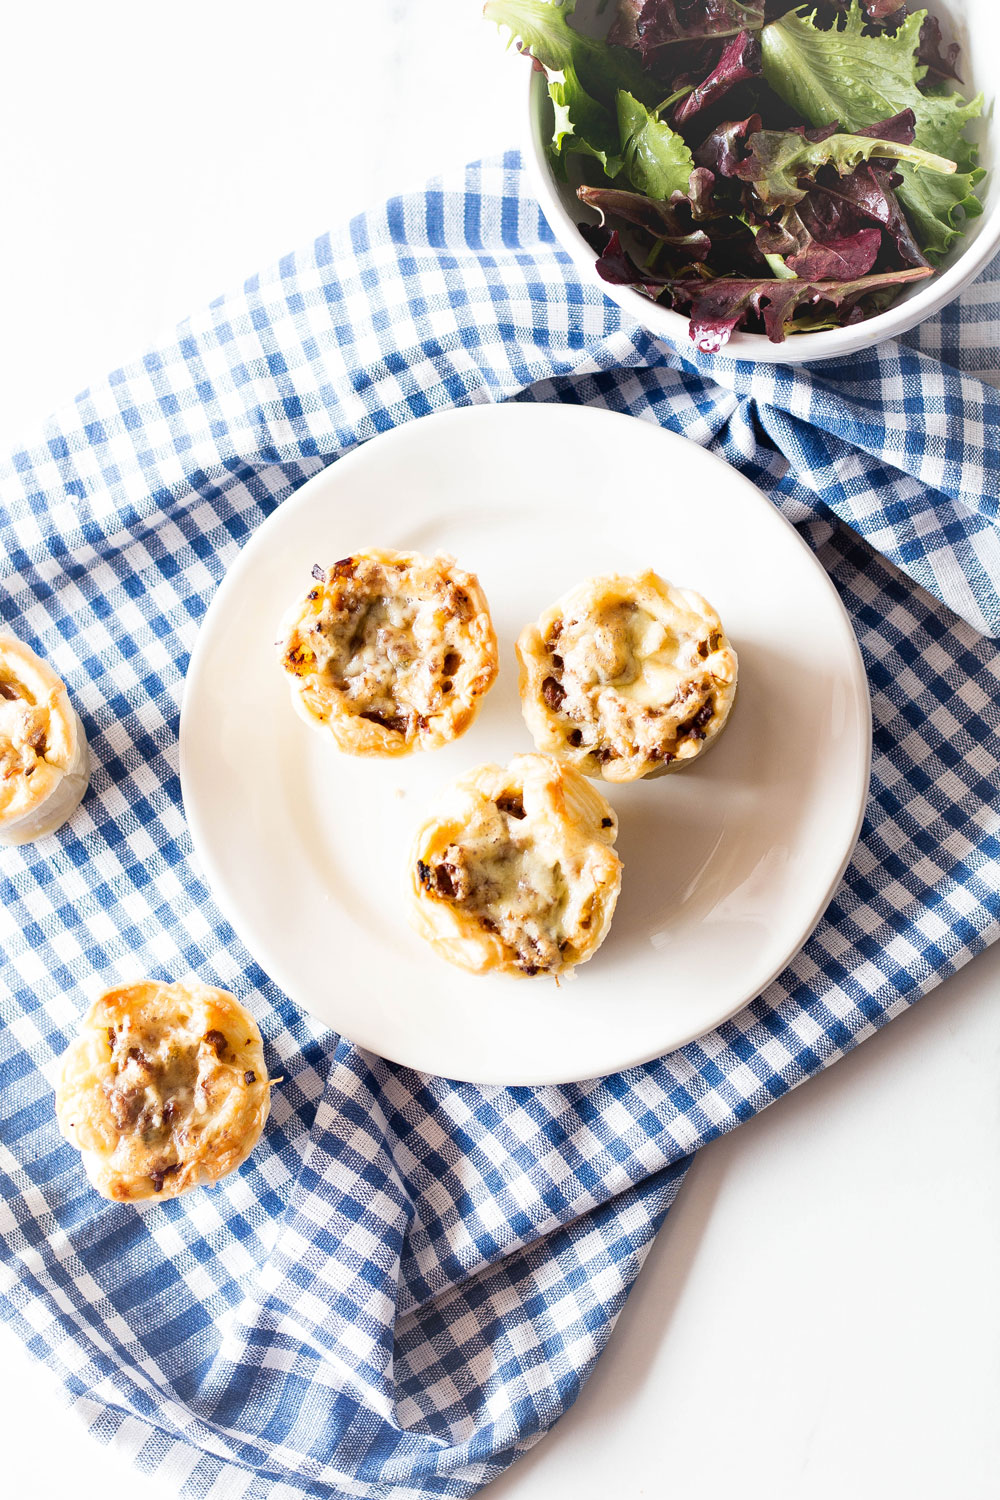 These Mini Sloppy Joe Pies are sweet, zesty, tangy, savory, and a family favorite. With the perfect texture and the right consistency, they're a crowd-pleaser and so simple and easy to make. https://www.spotebi.com/recipes/mini-sloppy-joe-pies/